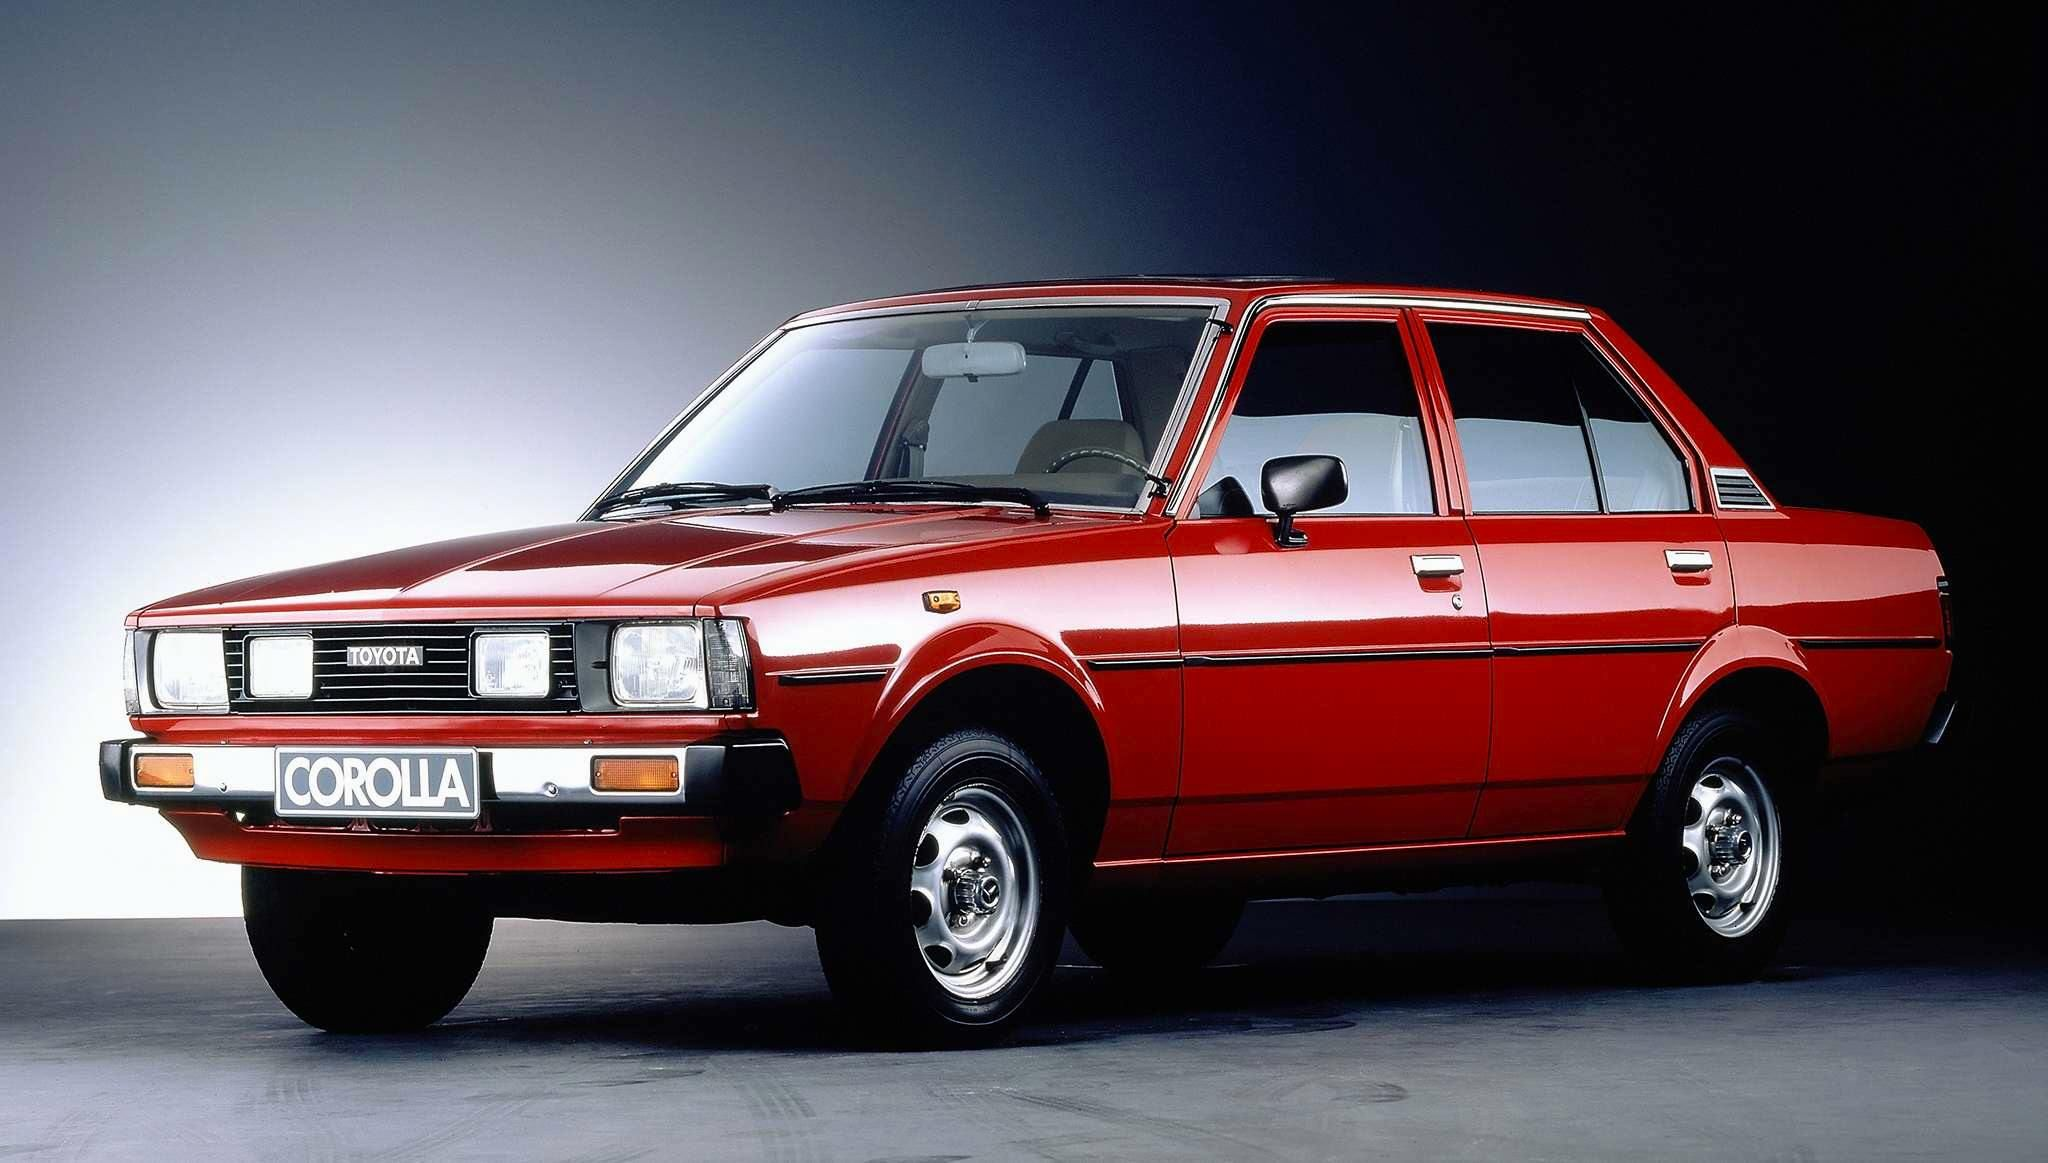 The 1980 model of the Toyota Corolla was a normal vision